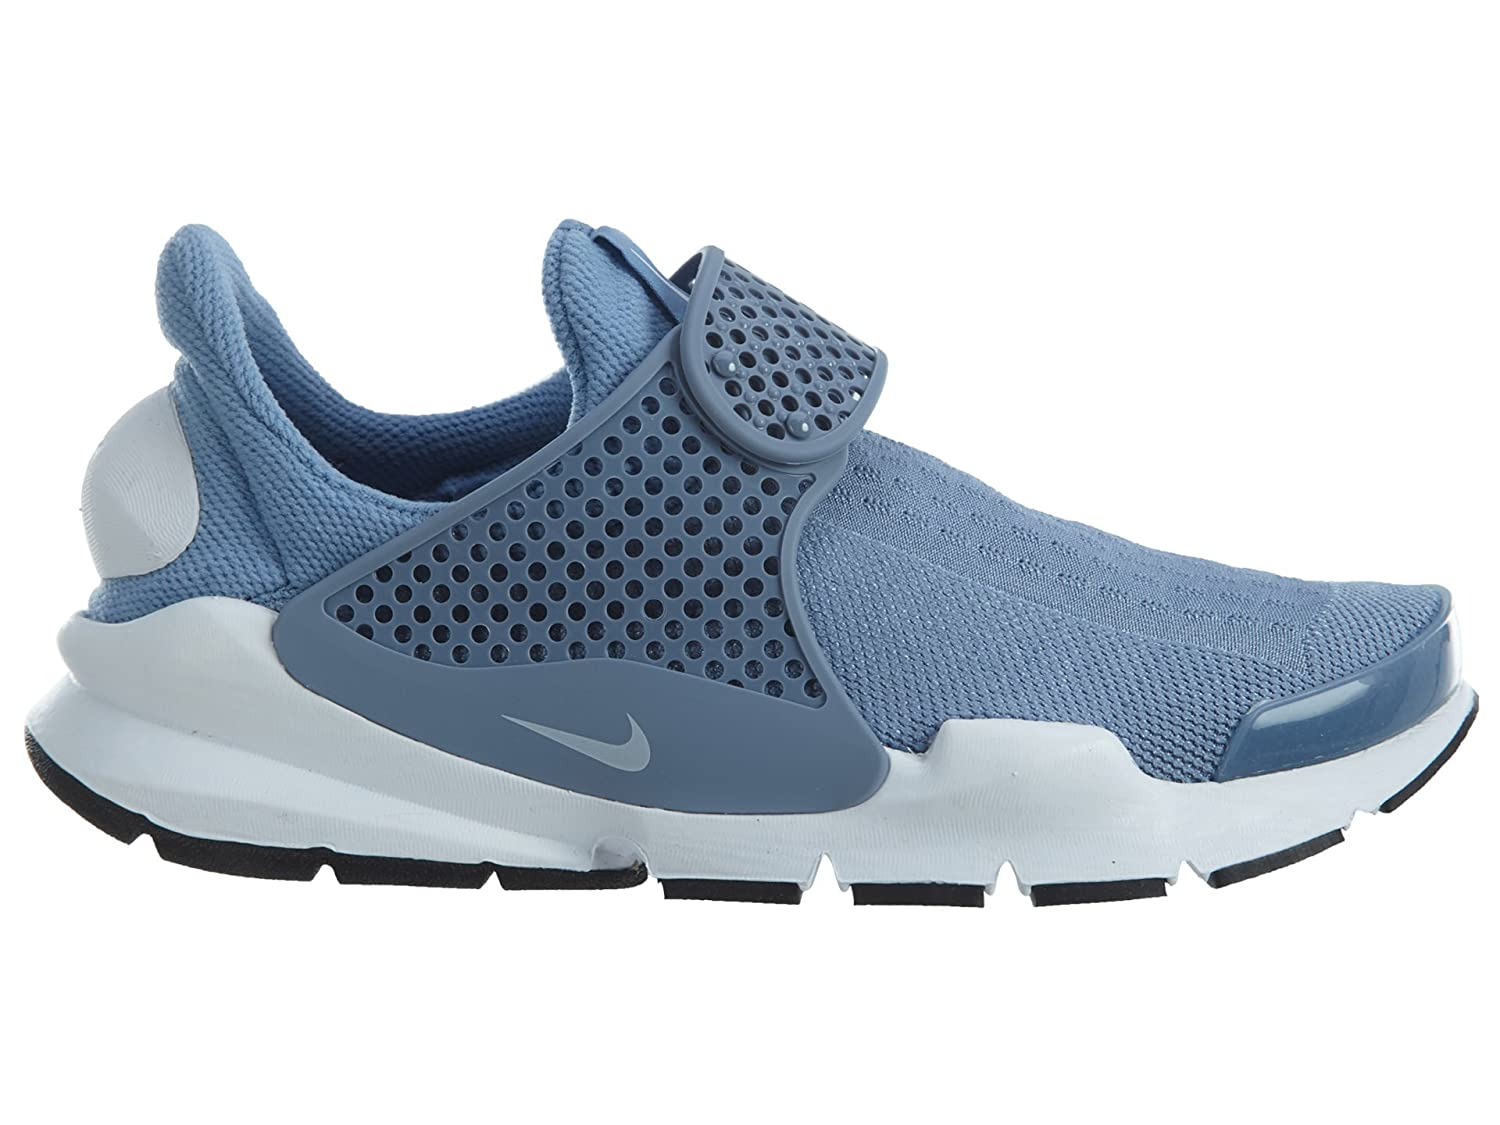 online retailer 4518c 39952 Nike Womens Sock Dart Running Shoes Work Blue White Black 848475-402 Size  10  Buy Online at Low Prices in India - Amazon.in